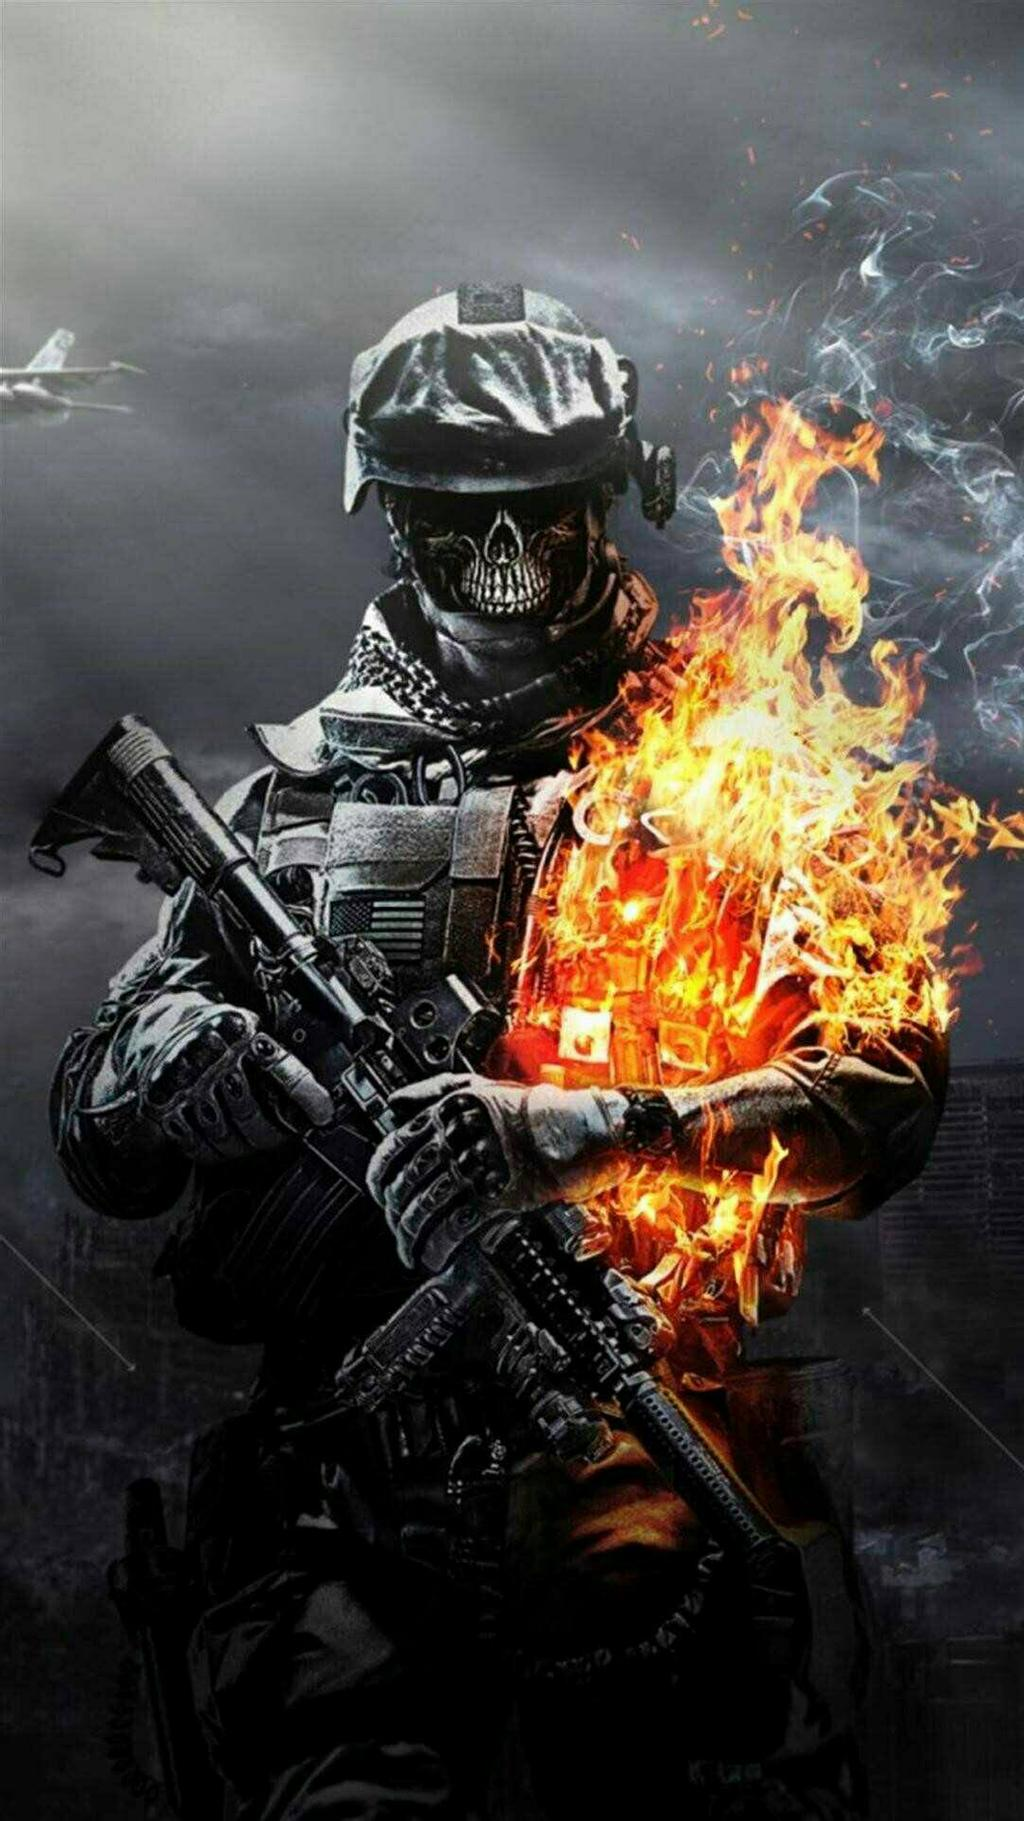 CALL OF DUTY wallpaper for mobile by LORD12DARK 1024x1821